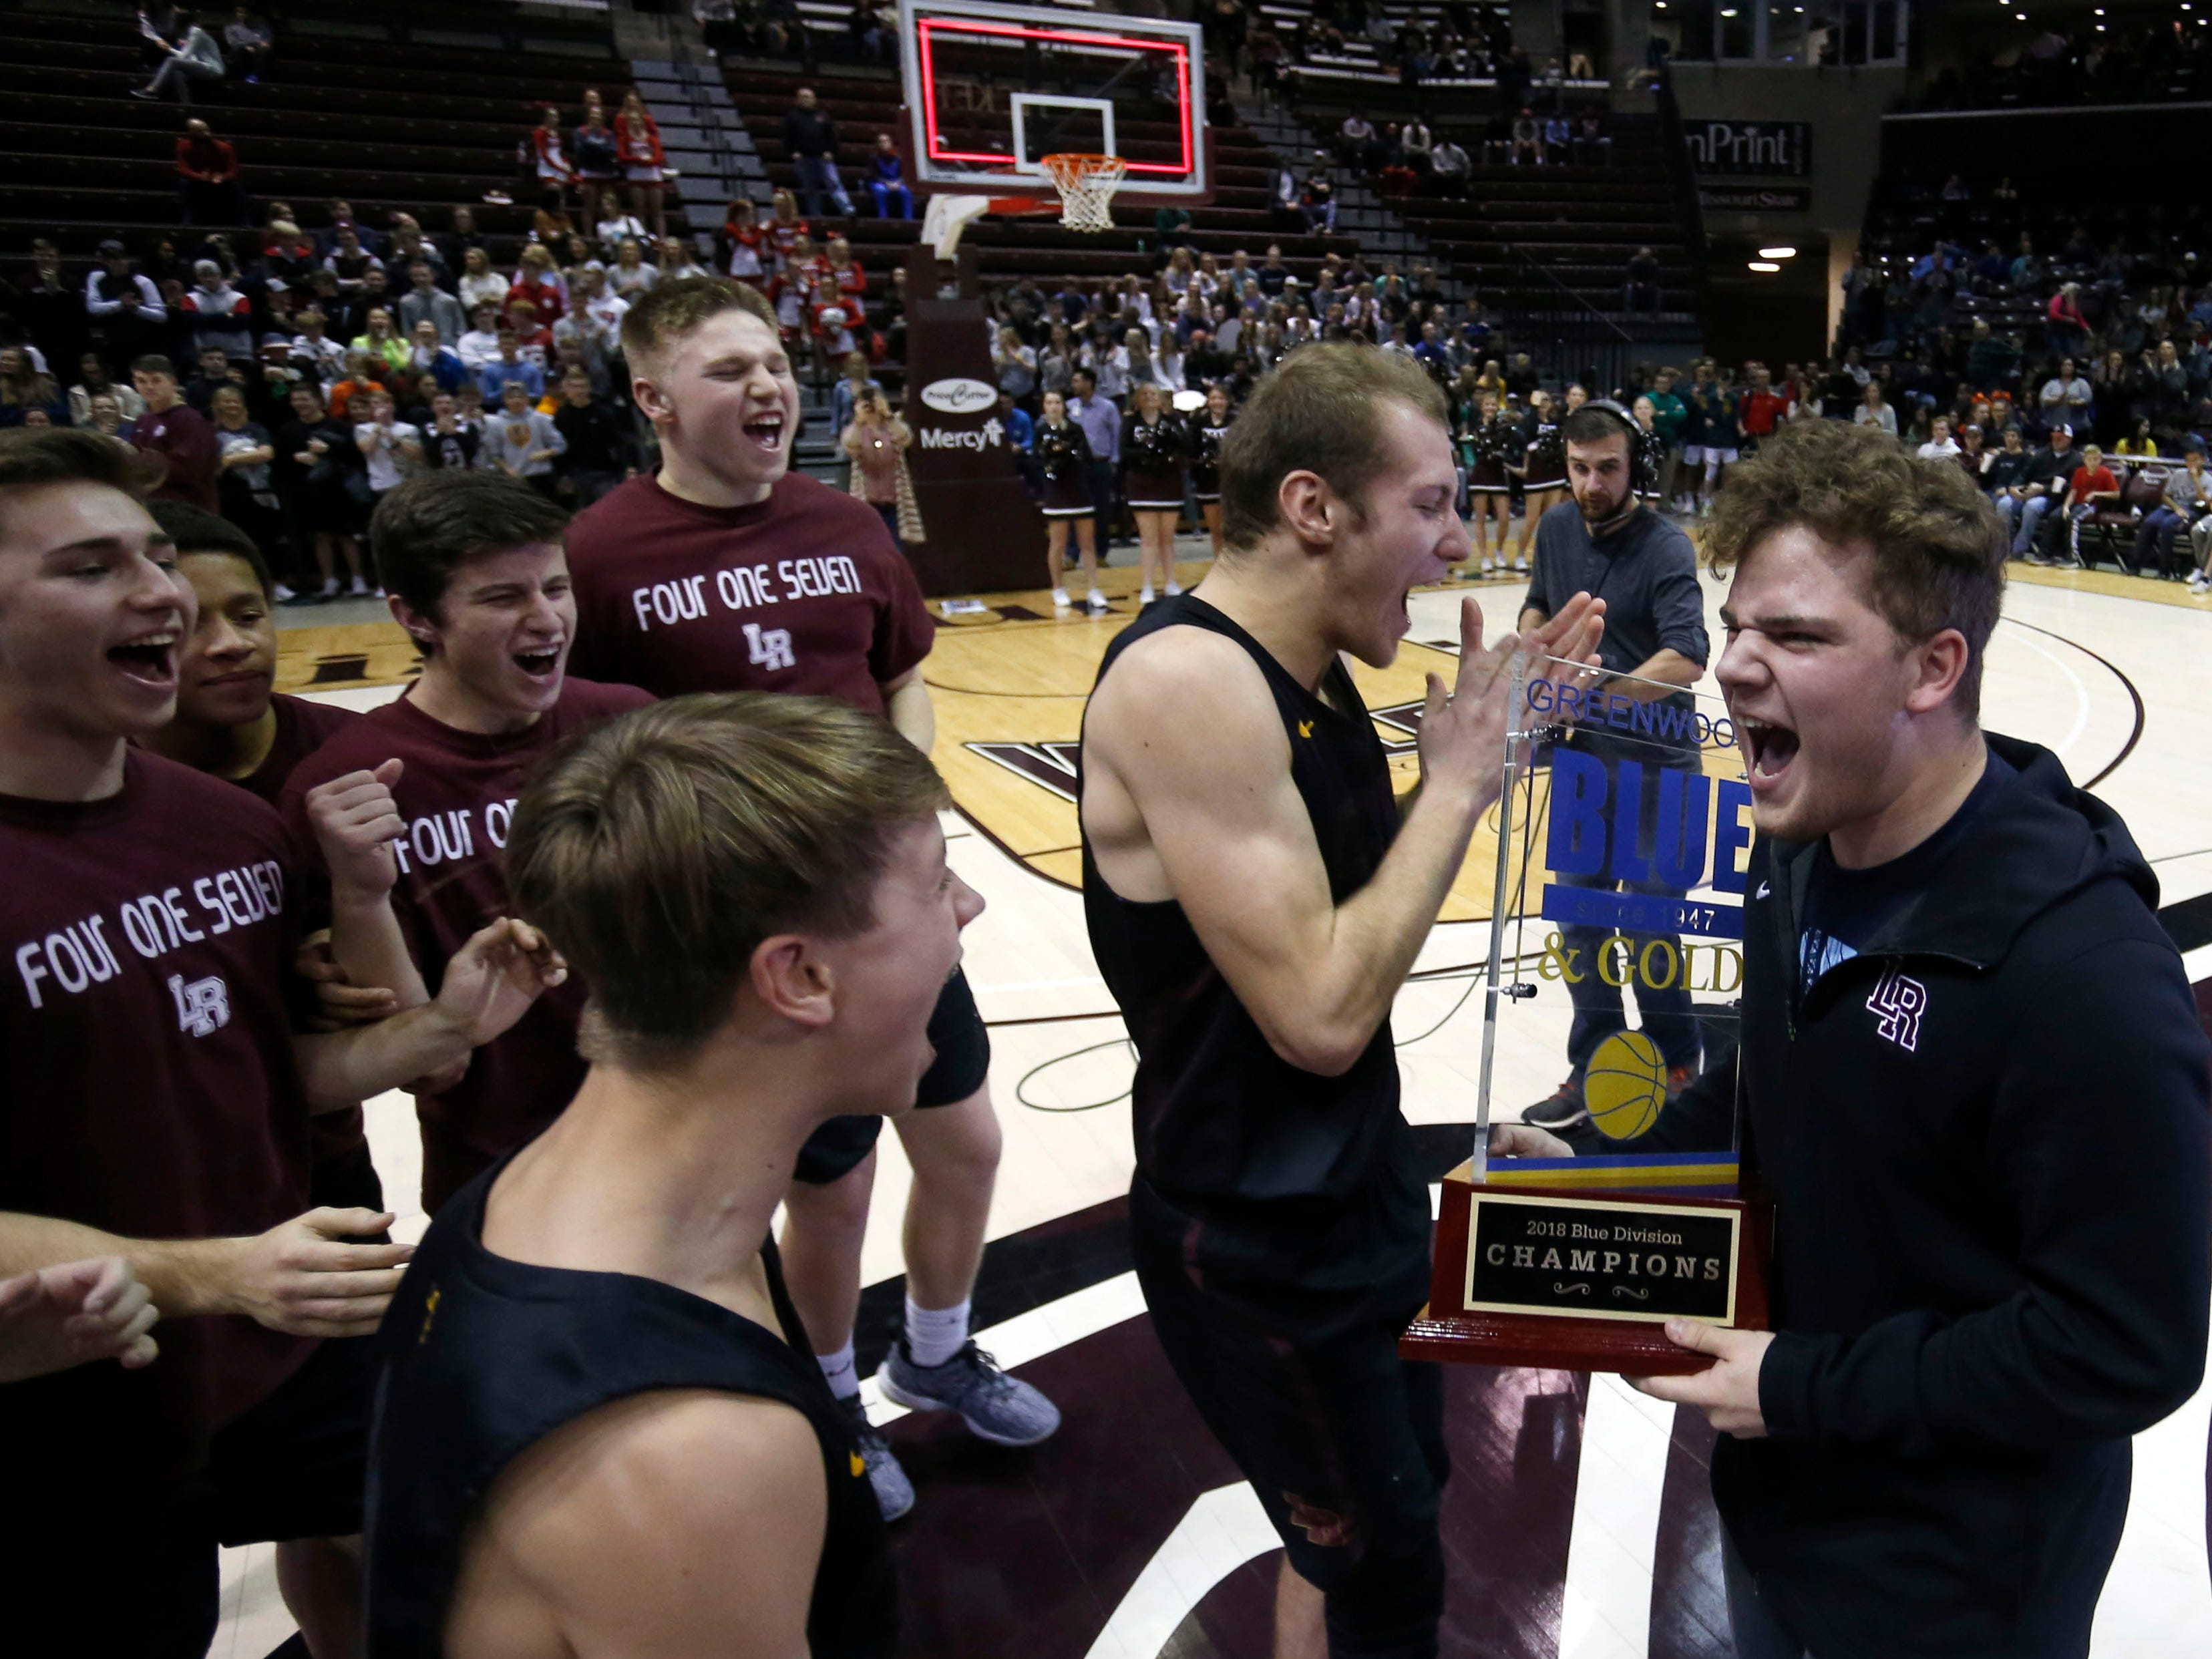 The Parkview Vikings take on the Logan-Rogersville Wildcats in the championship Blue Division game during the 2018 Blue and Gold Tournament at JQH Arena on Saturday, Dec. 29, 2018.